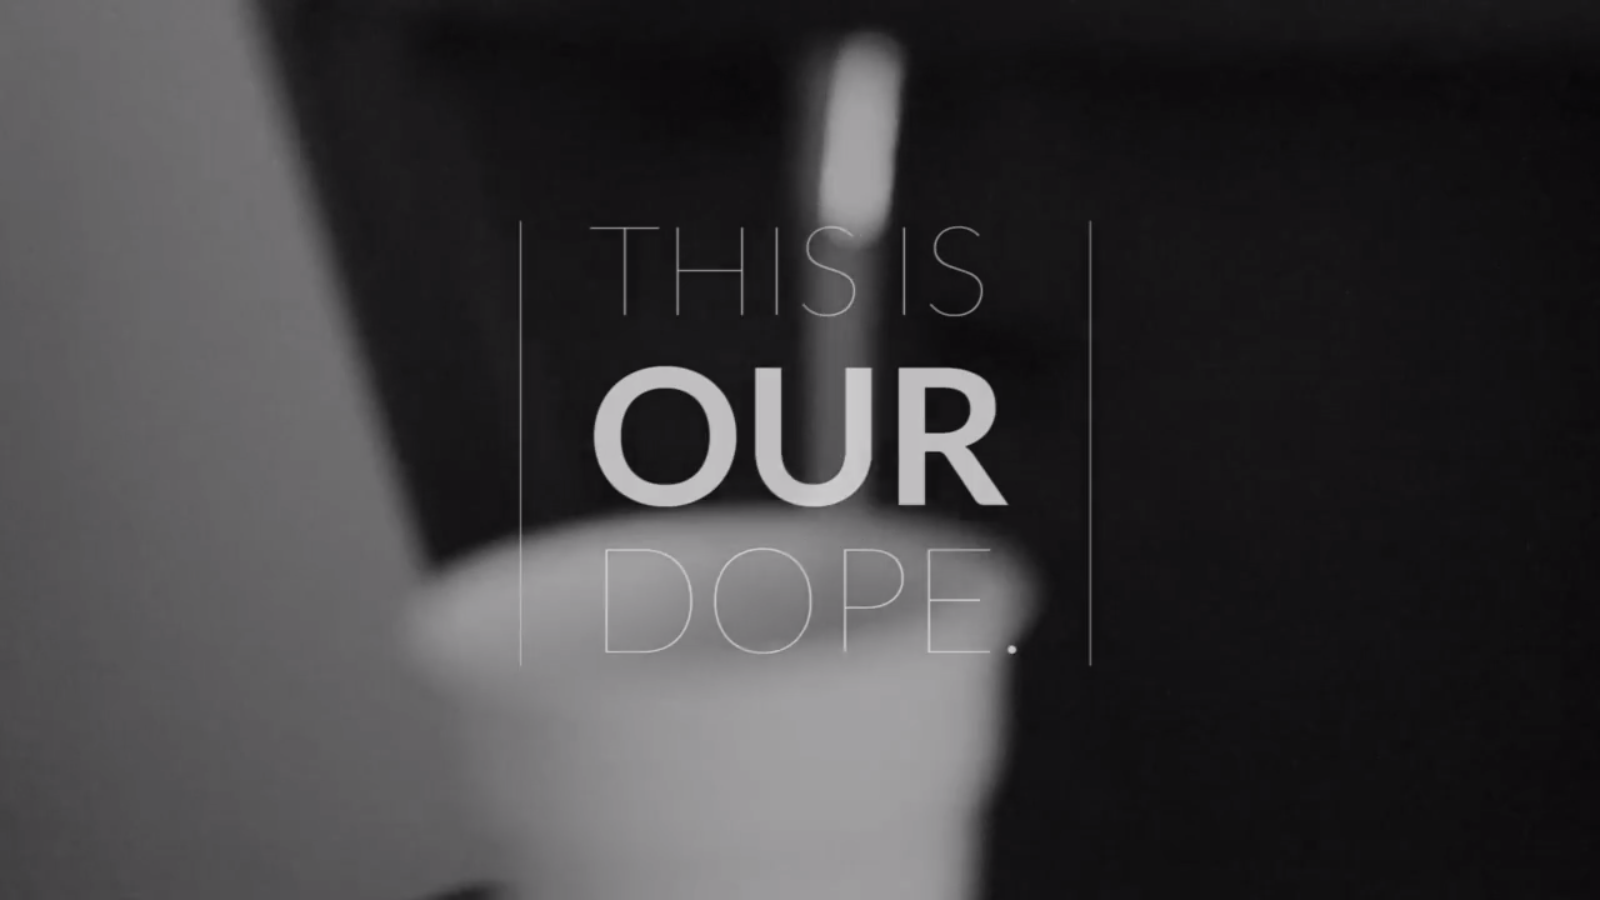 Clip This Is Our Dope sur vimeo